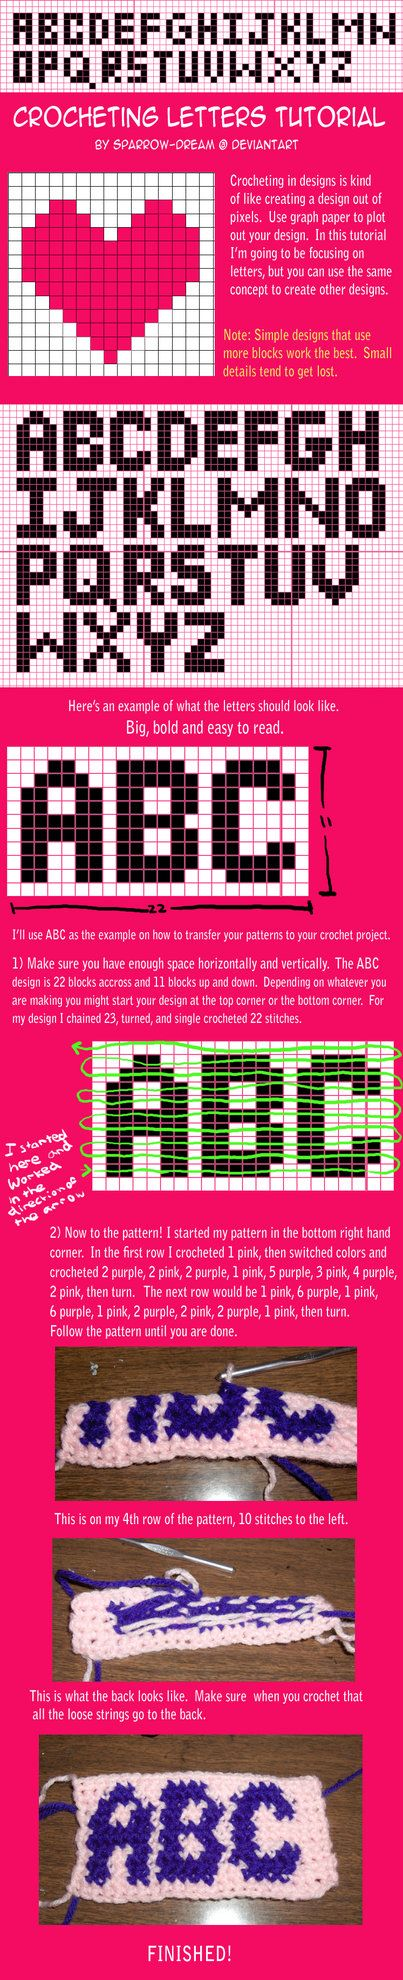 Crocheting Letters Tutorial : Crocheting Letters Tutorial by ~Sparrow-dream on deviantART (for my ...